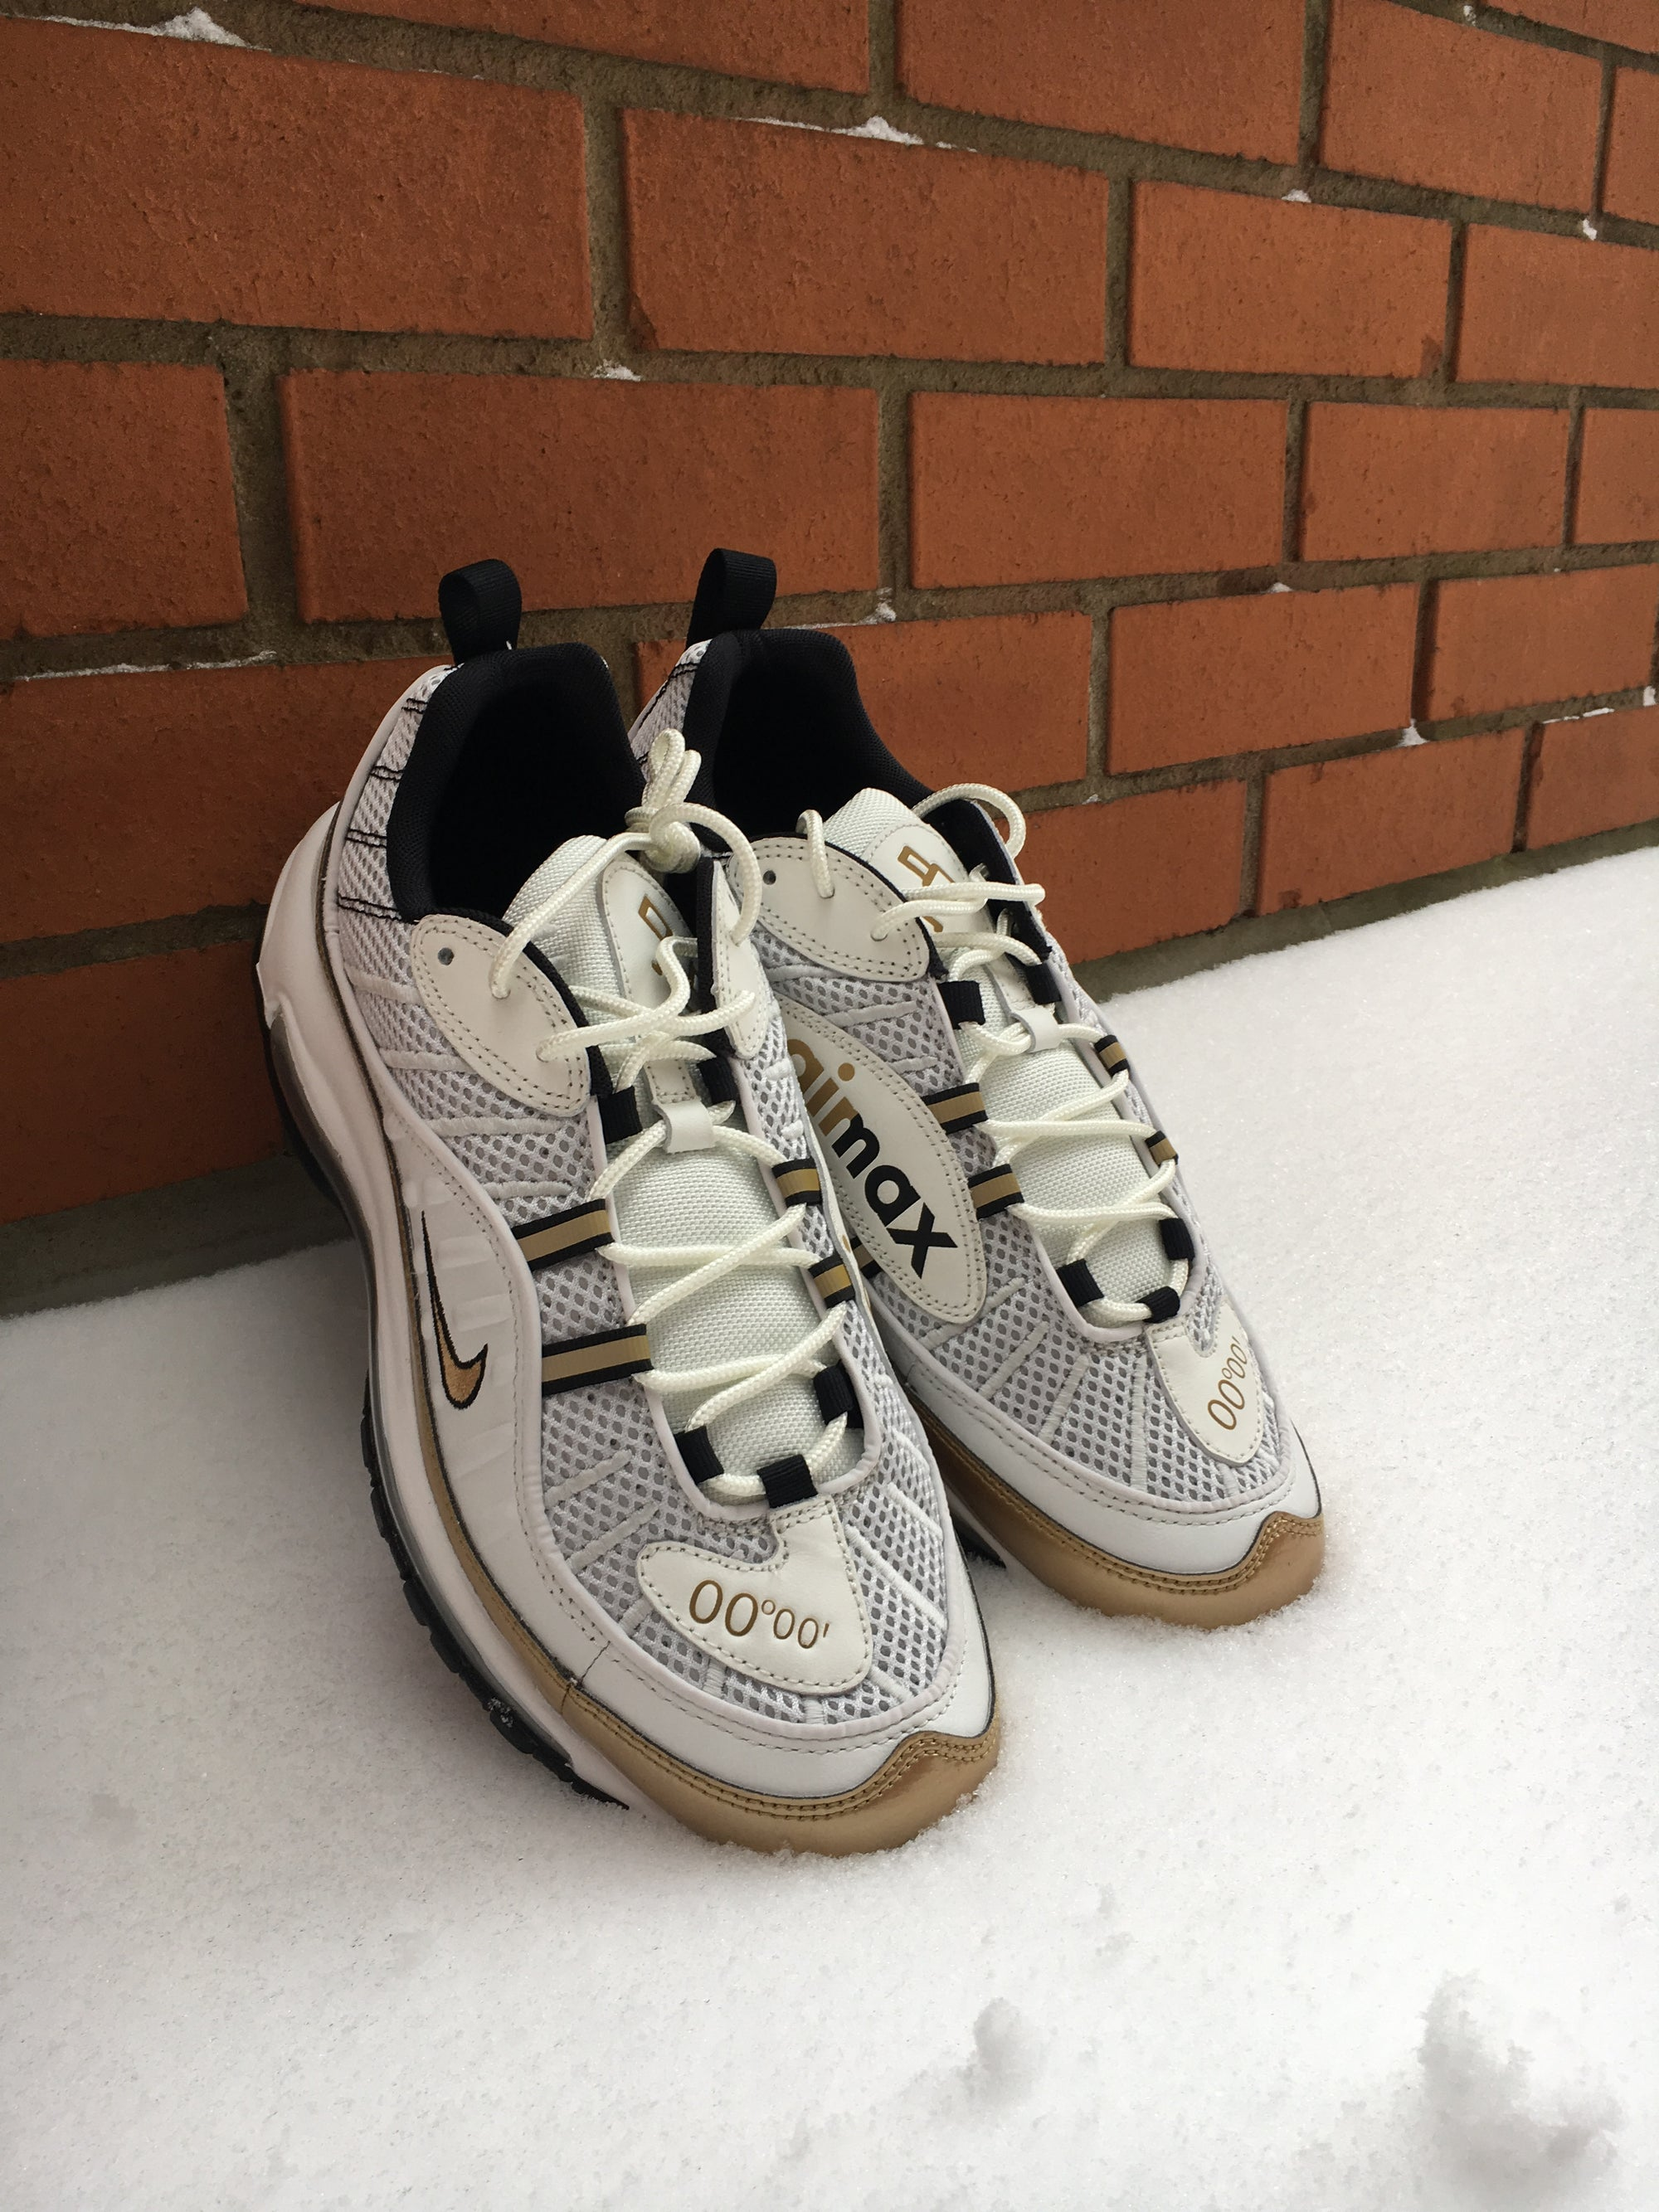 official photos 1fa23 b9017 Image of Nike Air Max 98  UK  Prime Meridian   White ...